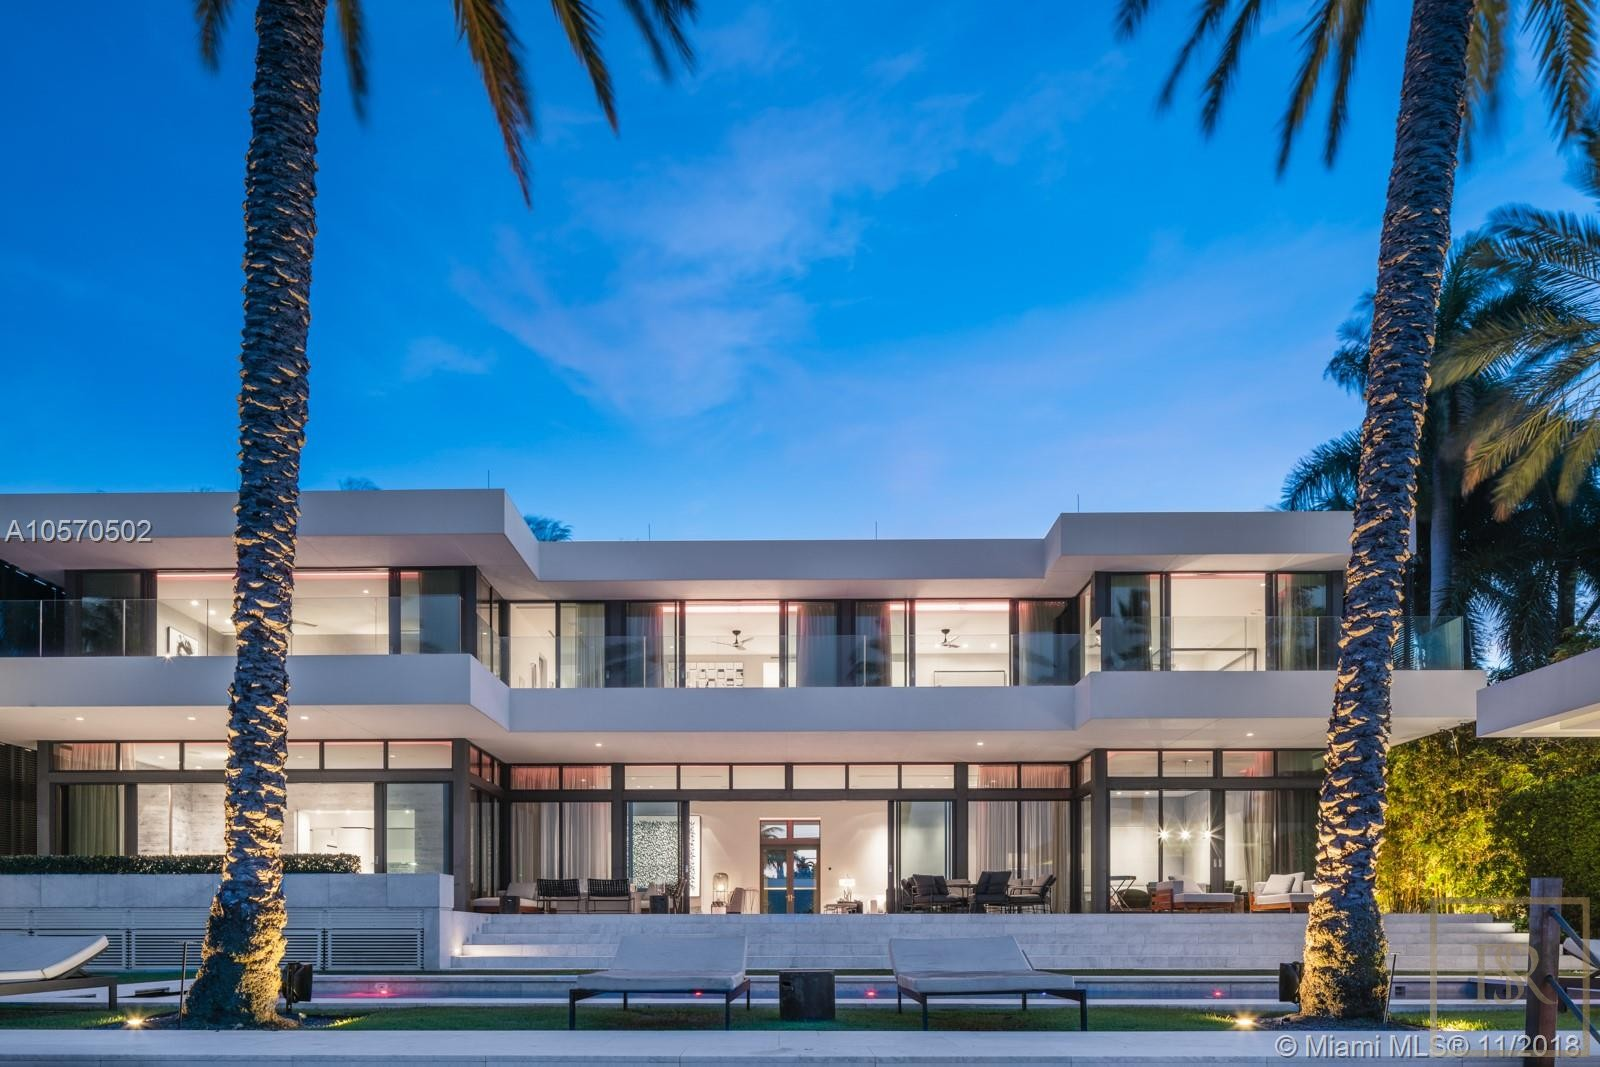 House HIBISCUS ISLAND 101 N Hibiscus Dr - Miami Beach, USA for sale For Super Rich